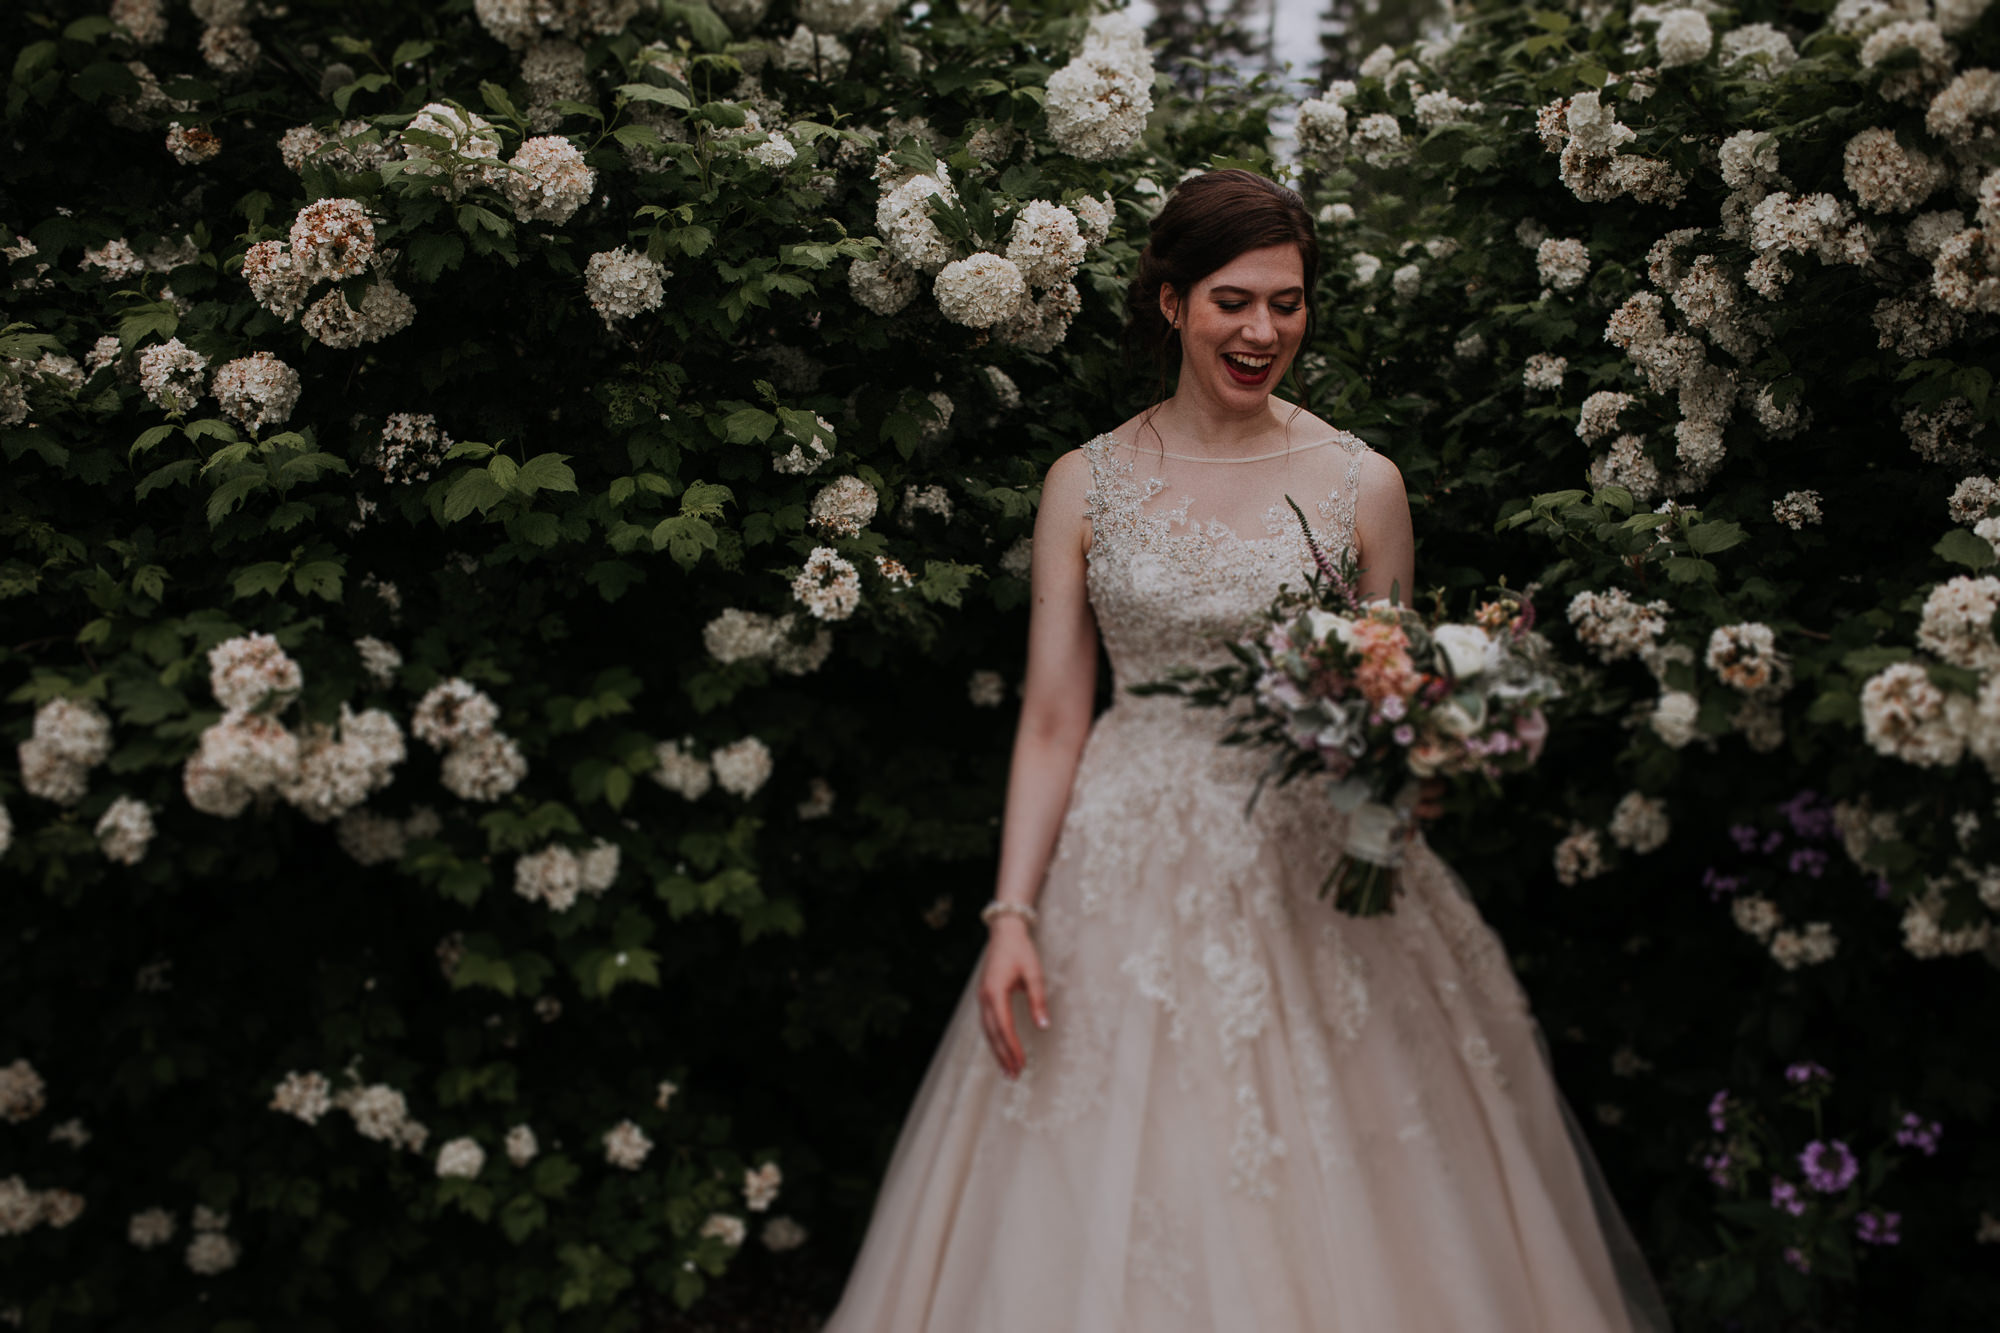 Copy of 6.2017_Abby Rose Photography_AnnArborBarnWedding_3.jpg